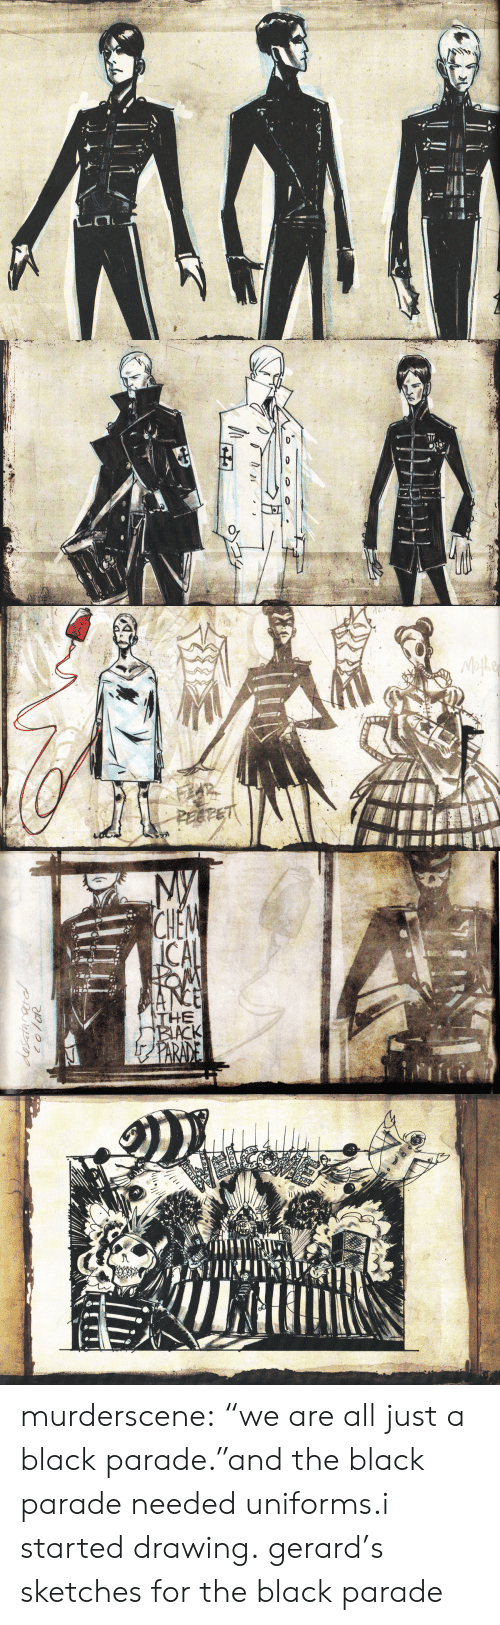 """We Are All: Mofhe  PEEFET   My  CHEM  ICAL  OM  MANCE  THE  BIACK  fPARANE  desatarardl  coloR murderscene:  """"we are all just a black parade.""""and the black parade needed uniforms.i started drawing. gerard's sketches for the black parade"""